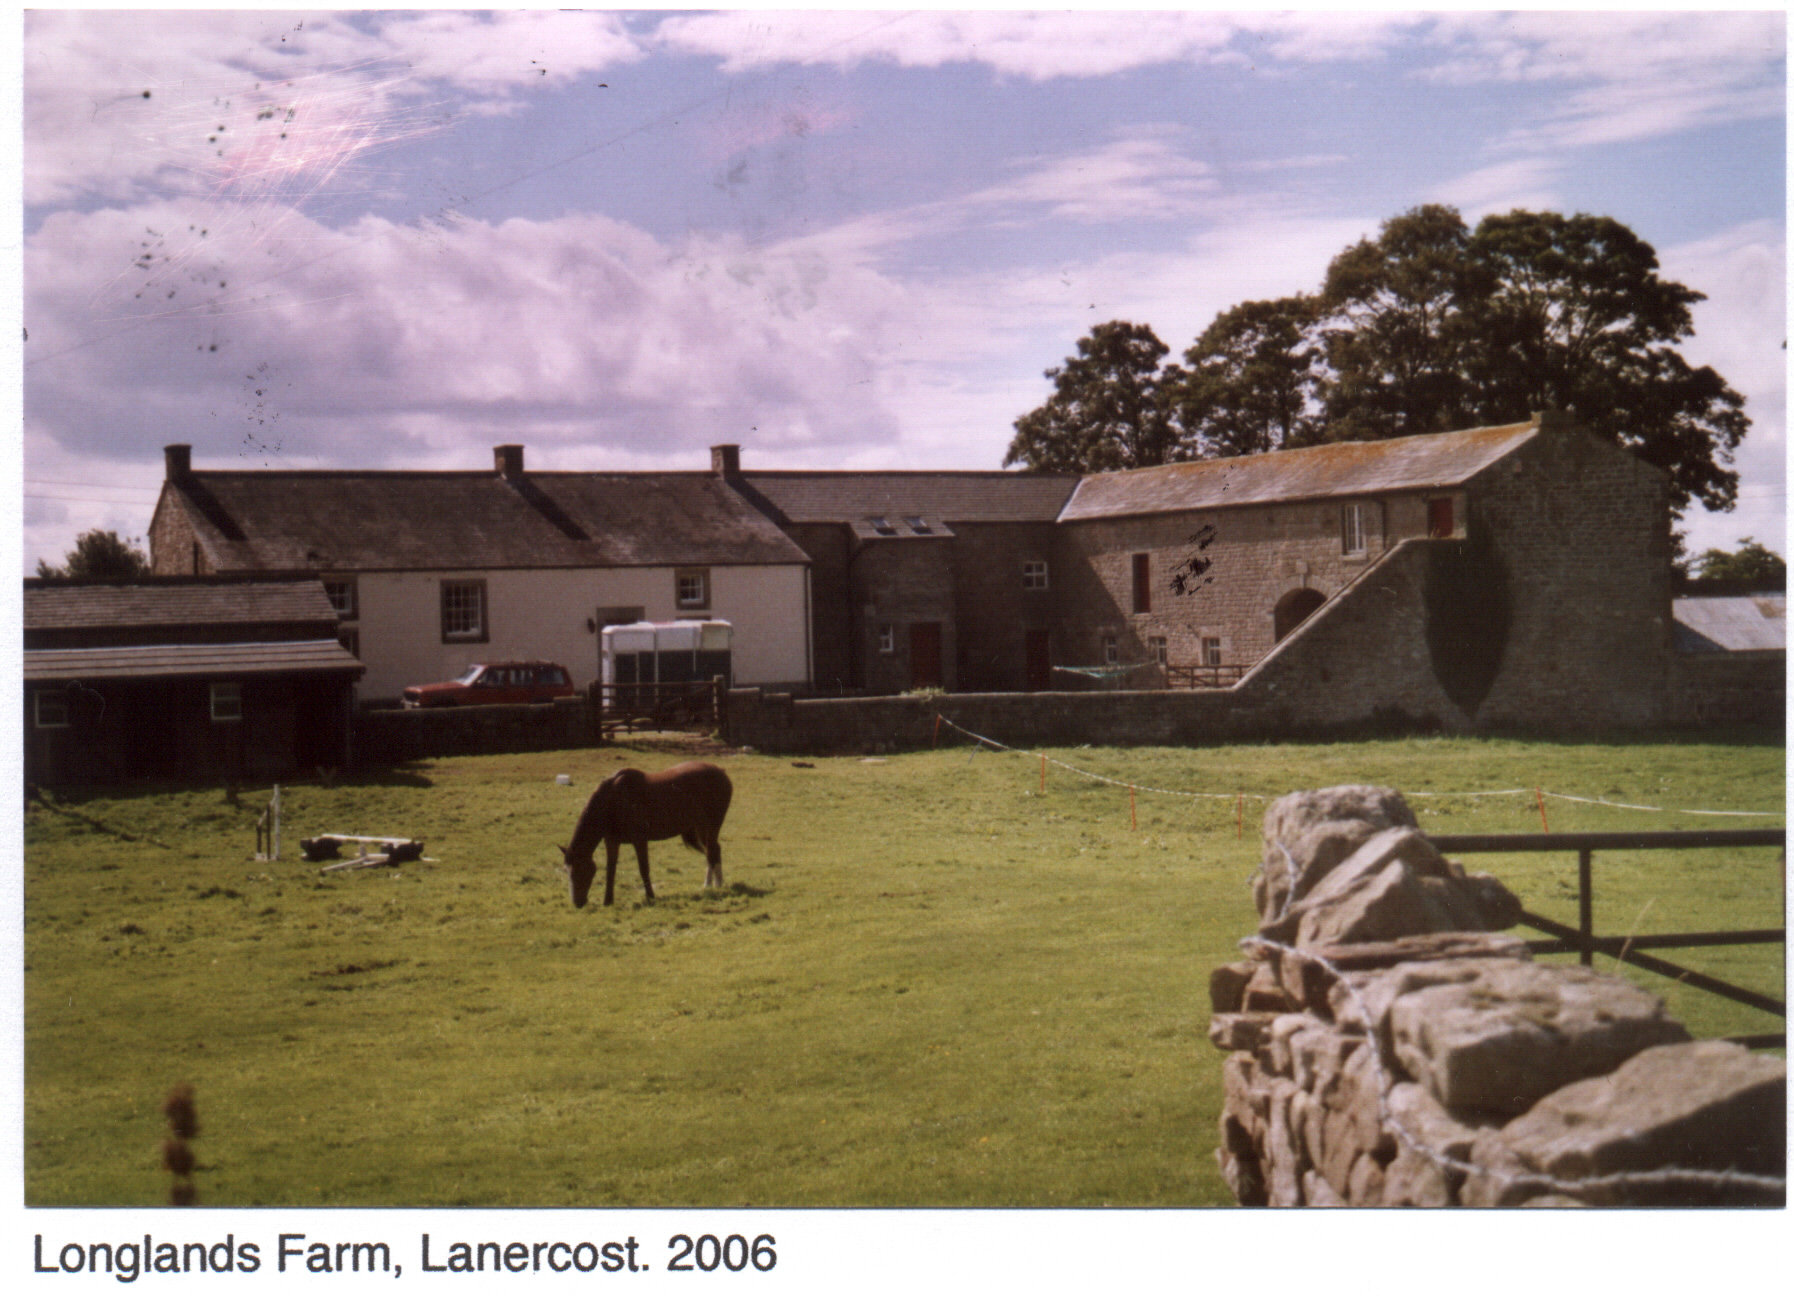 Longlands Farm, Lanercost 2006